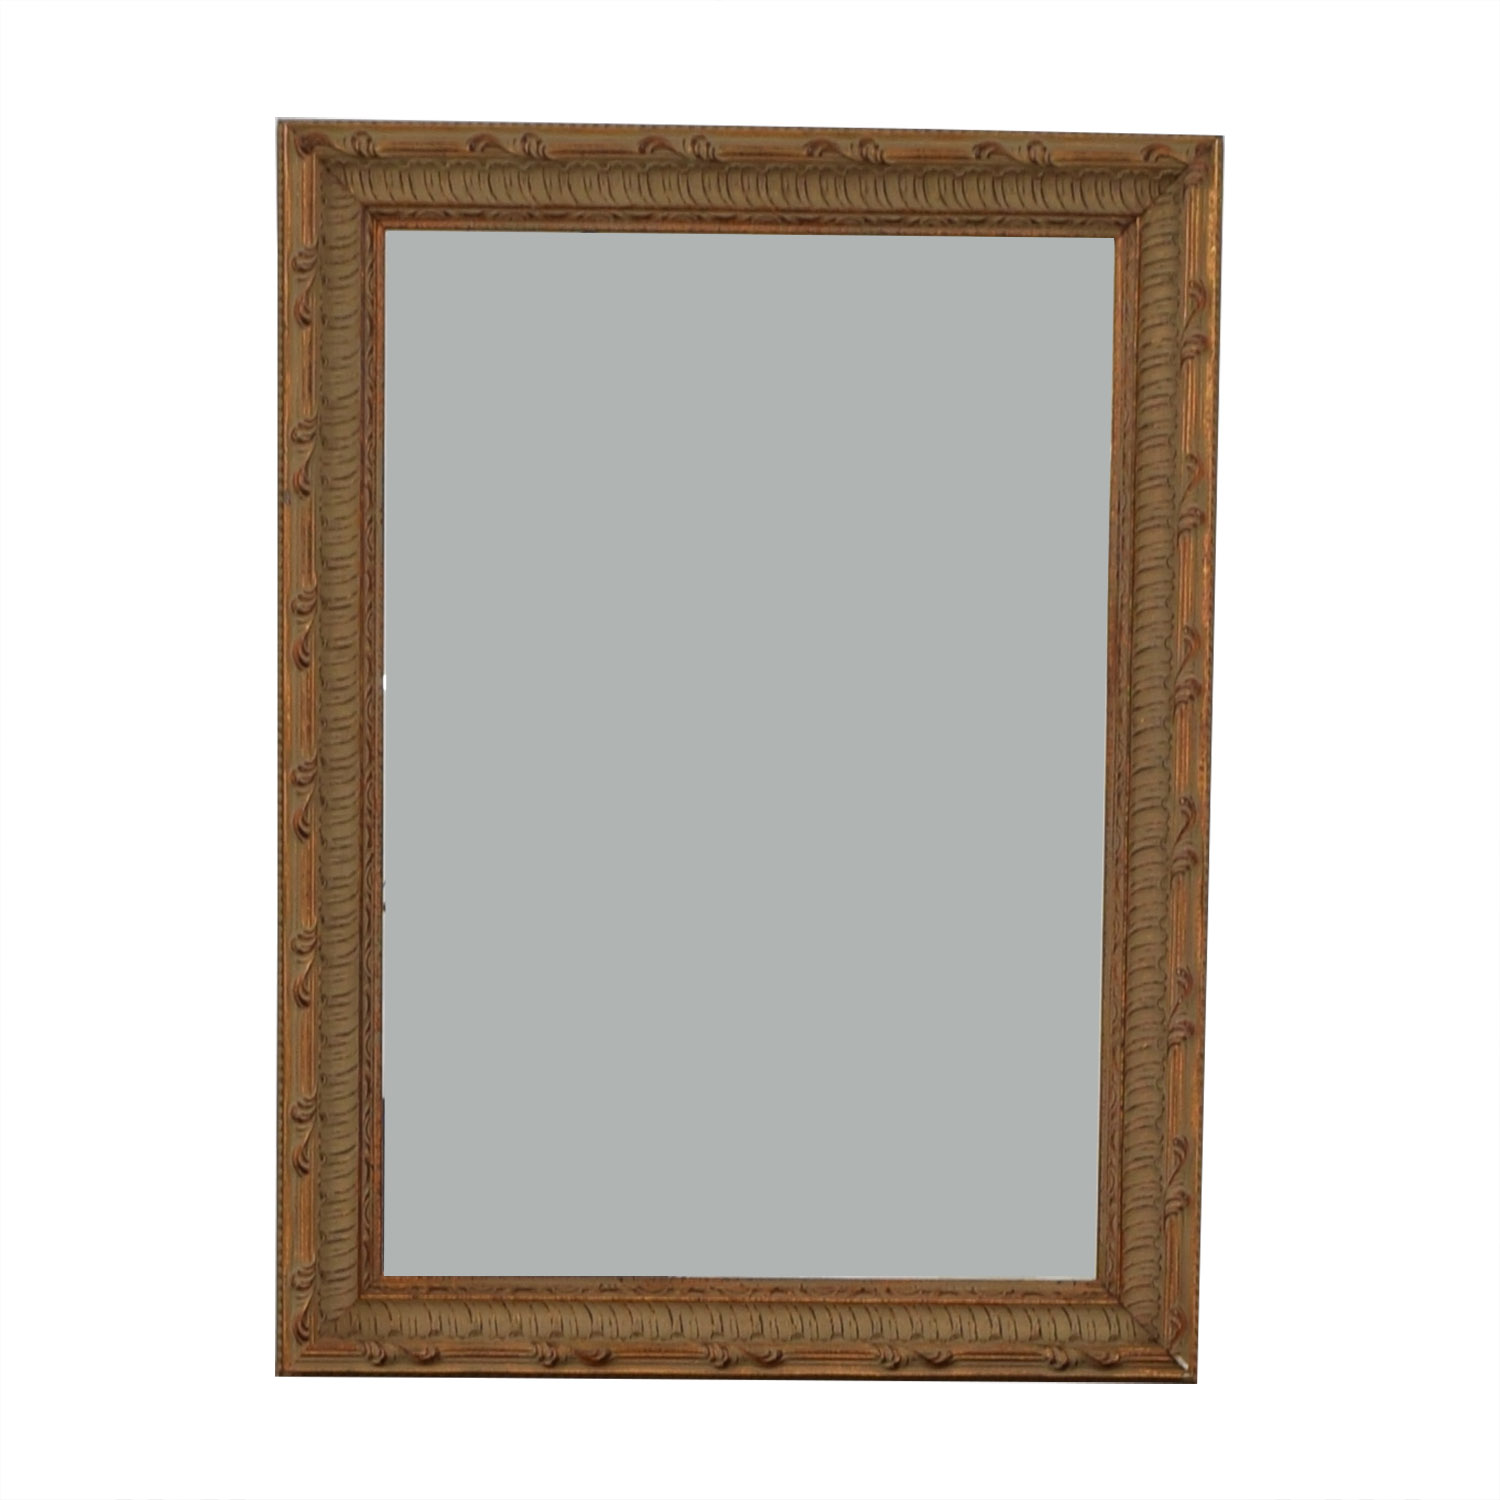 buy Ethan Allen Worn Red and Beige Mirror Ethan Allen Decor